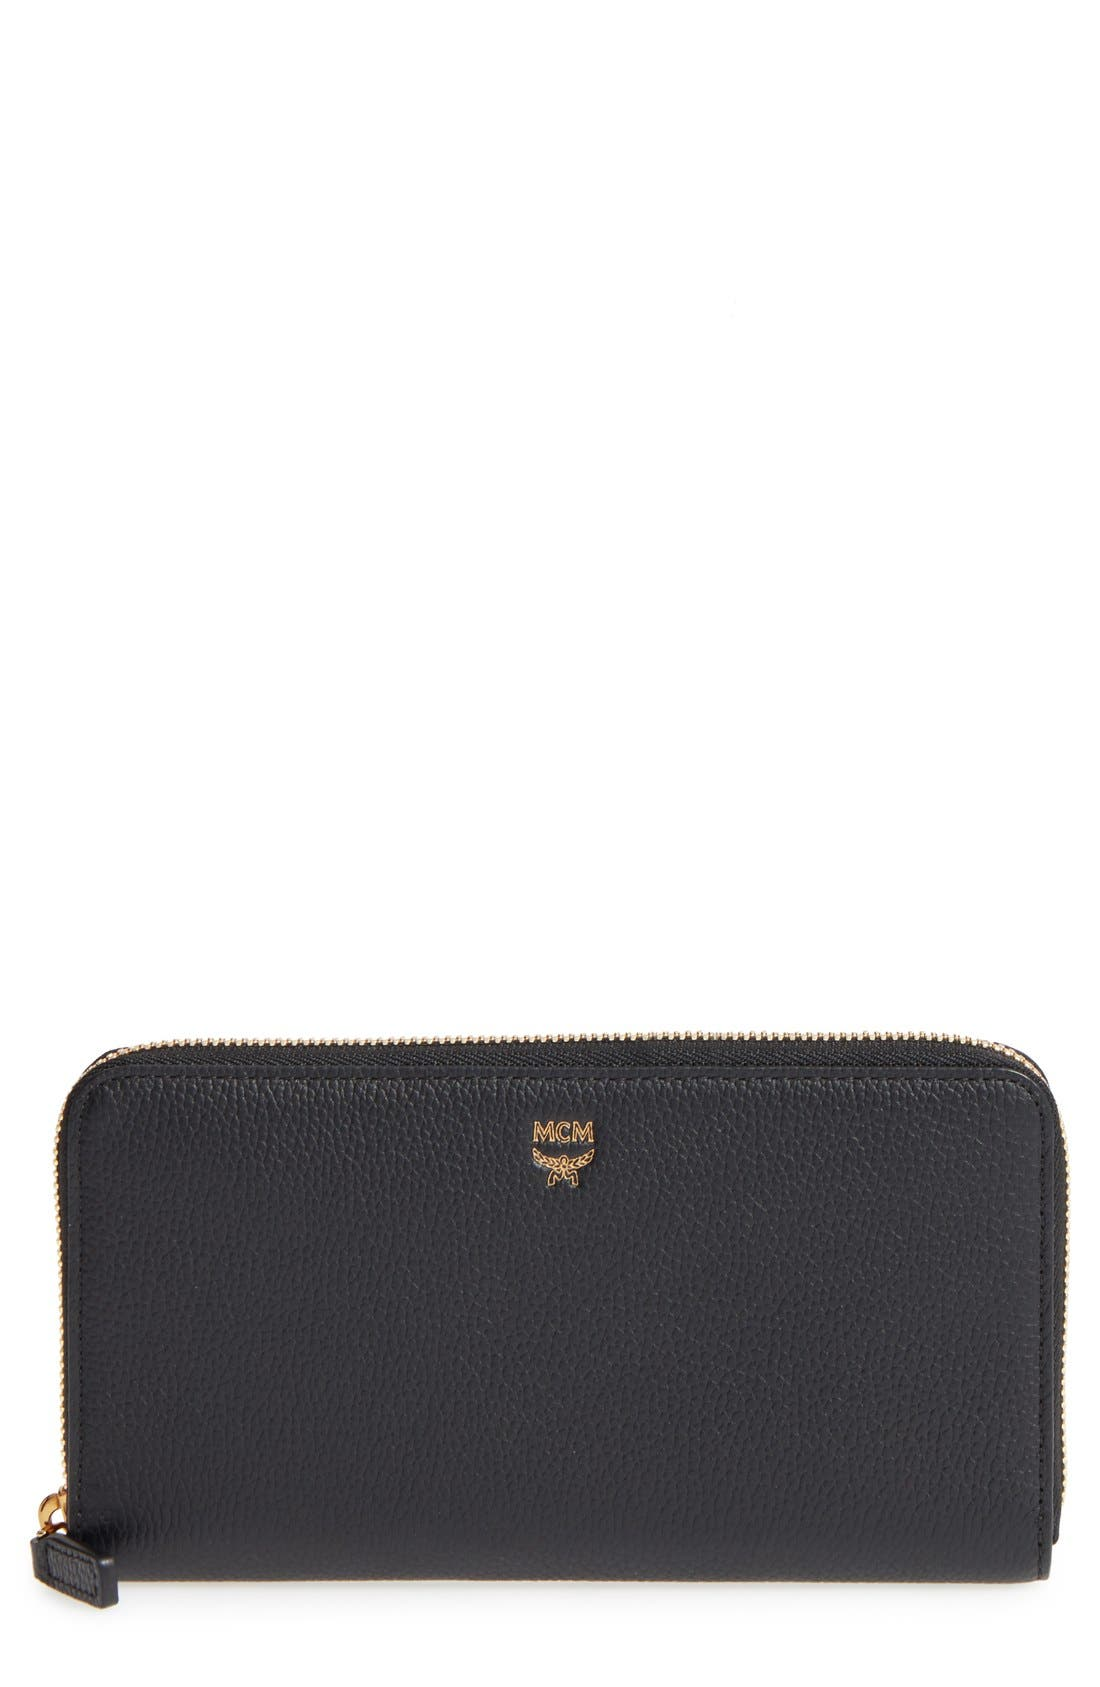 Main Image - MCM Milla Leather Zip Around Wallet